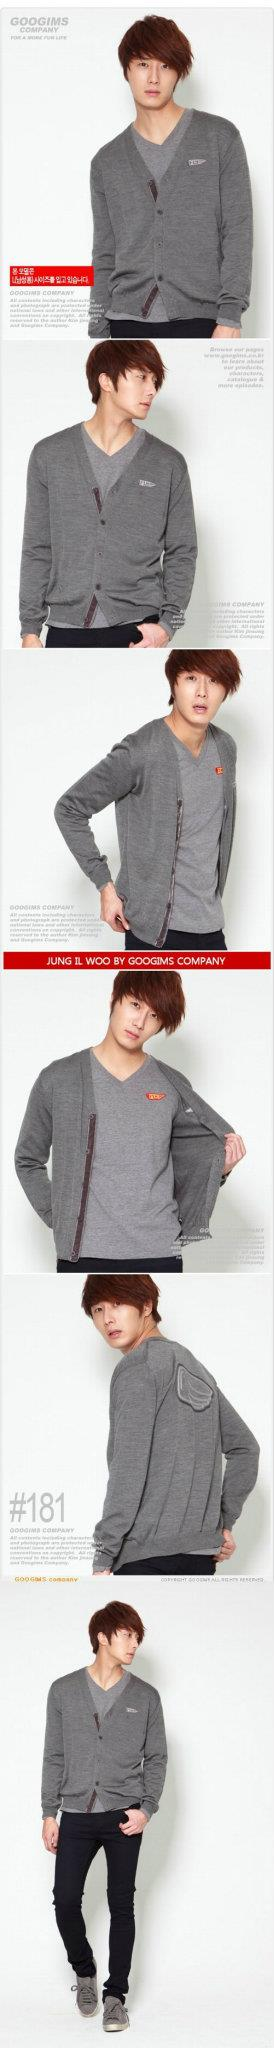 2011 10 Jung II-woo for Googims. Part 3 00009